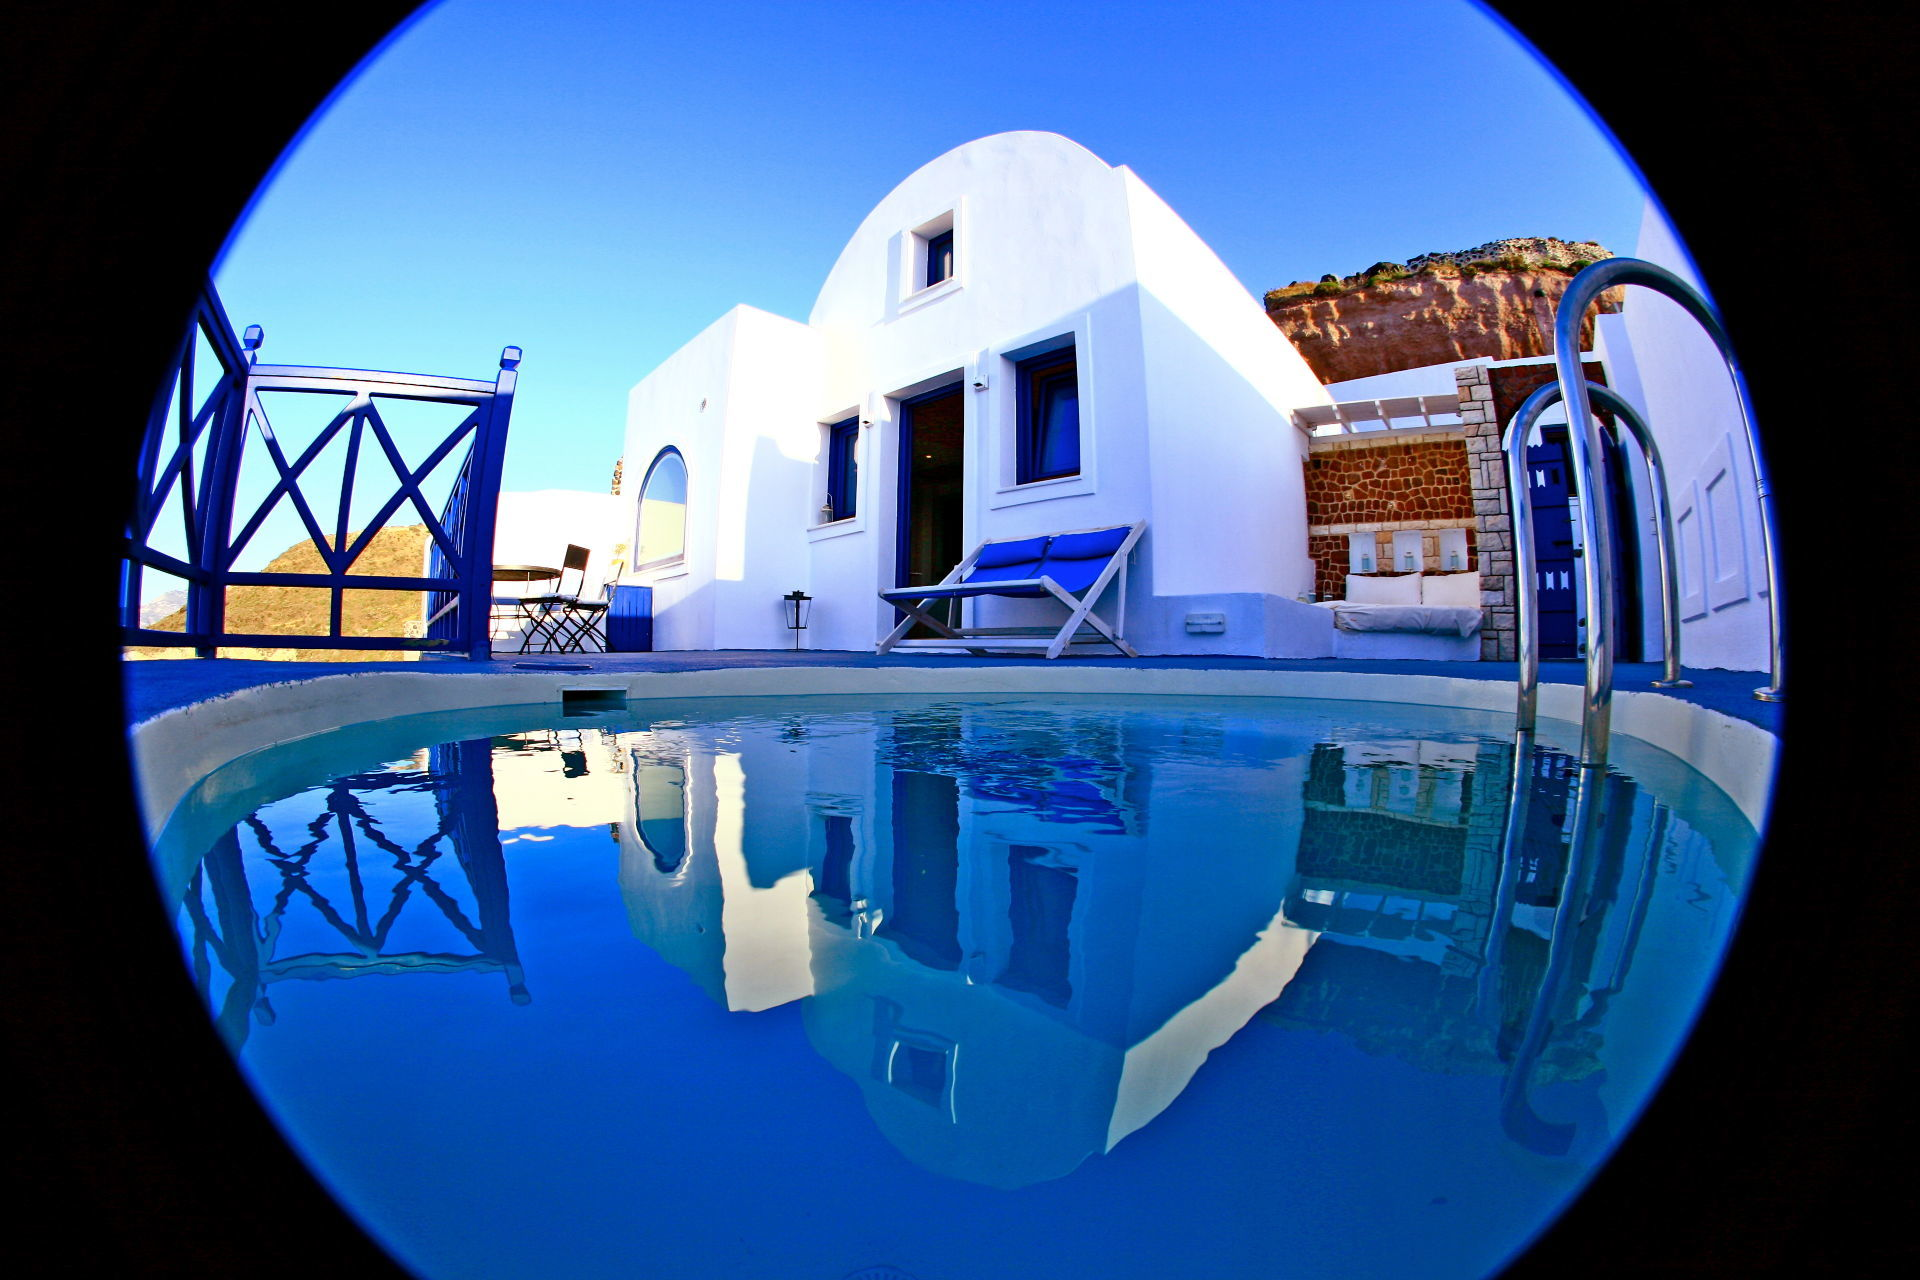 1_Astarte_Suite_private_outdoor_Pool_and_indoor_couples_Jacuzzi